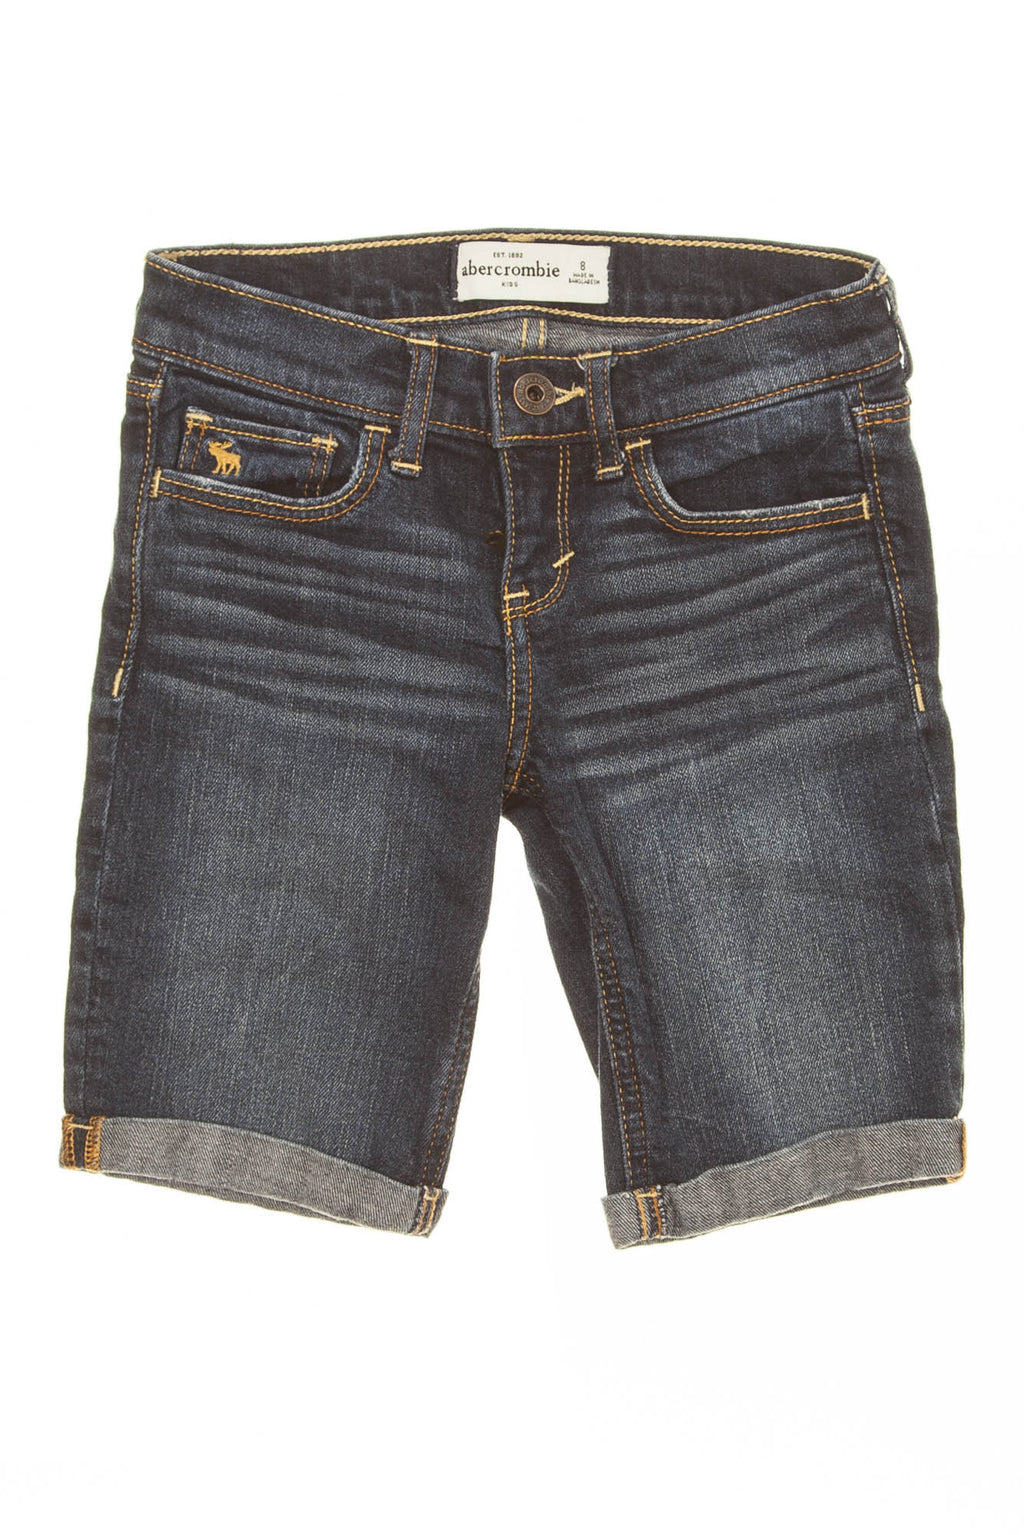 Abercrombie Kids - Dark Wash Bermuda Shorts - 8